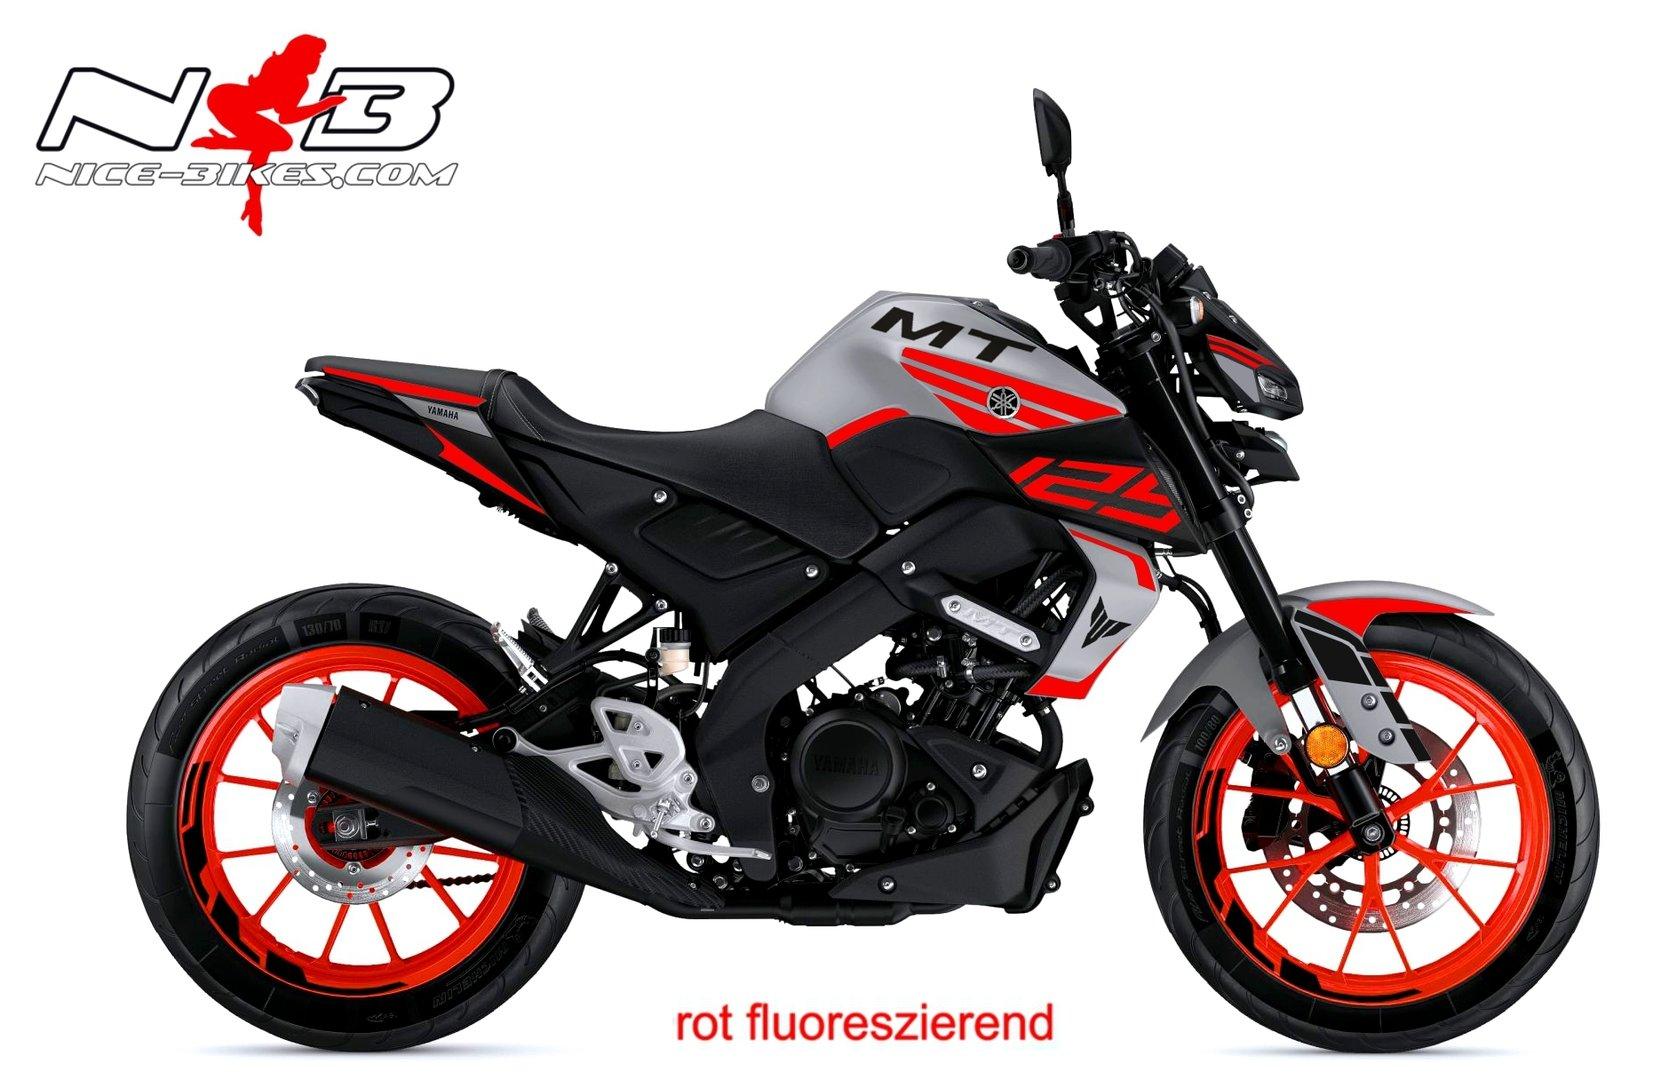 Foliendesign YAMAHA MT125 Bj. 2020 Racing Red Fluo